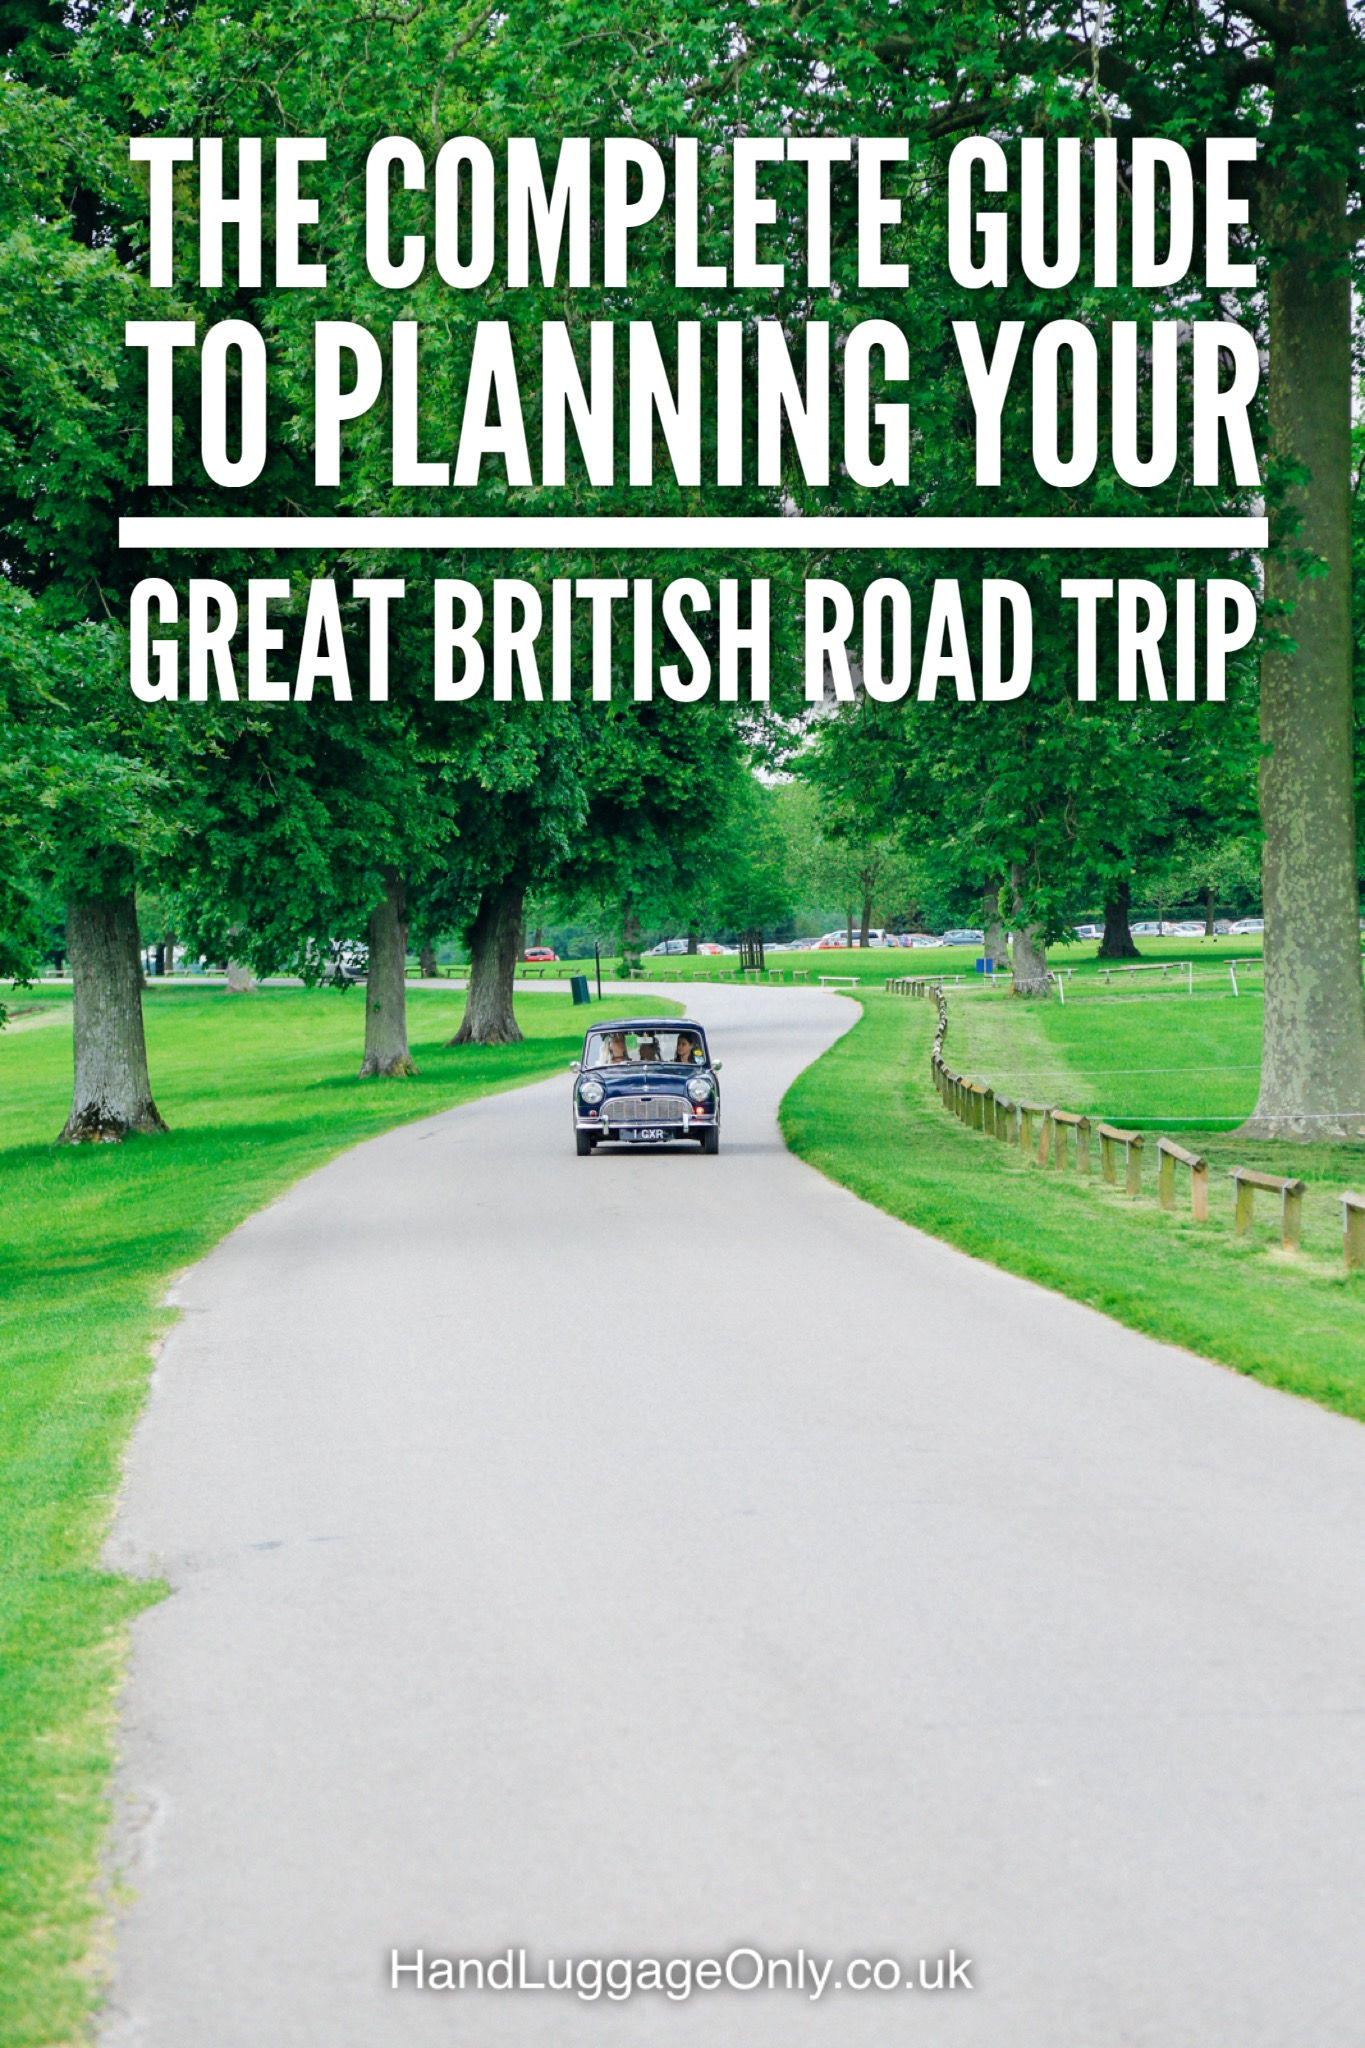 The Complete Guide To Planning Your Great British Road